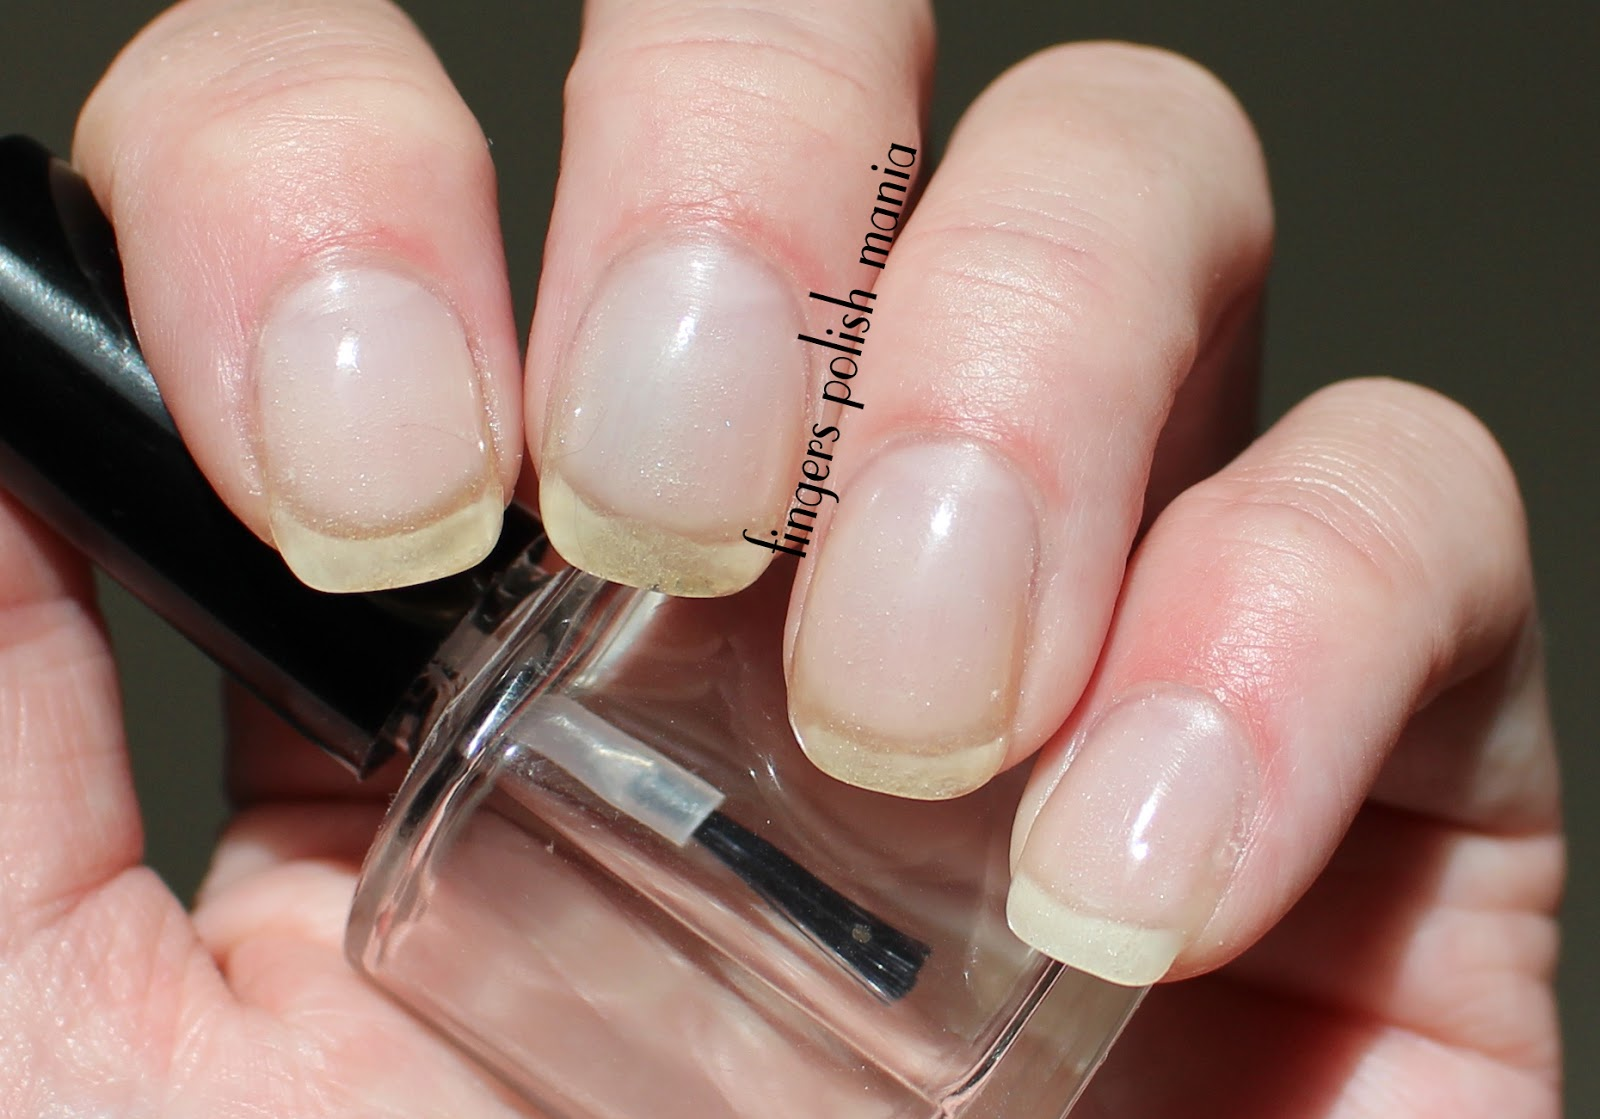 fingers polish mania: EZ Dip Gel Nails Clear Version